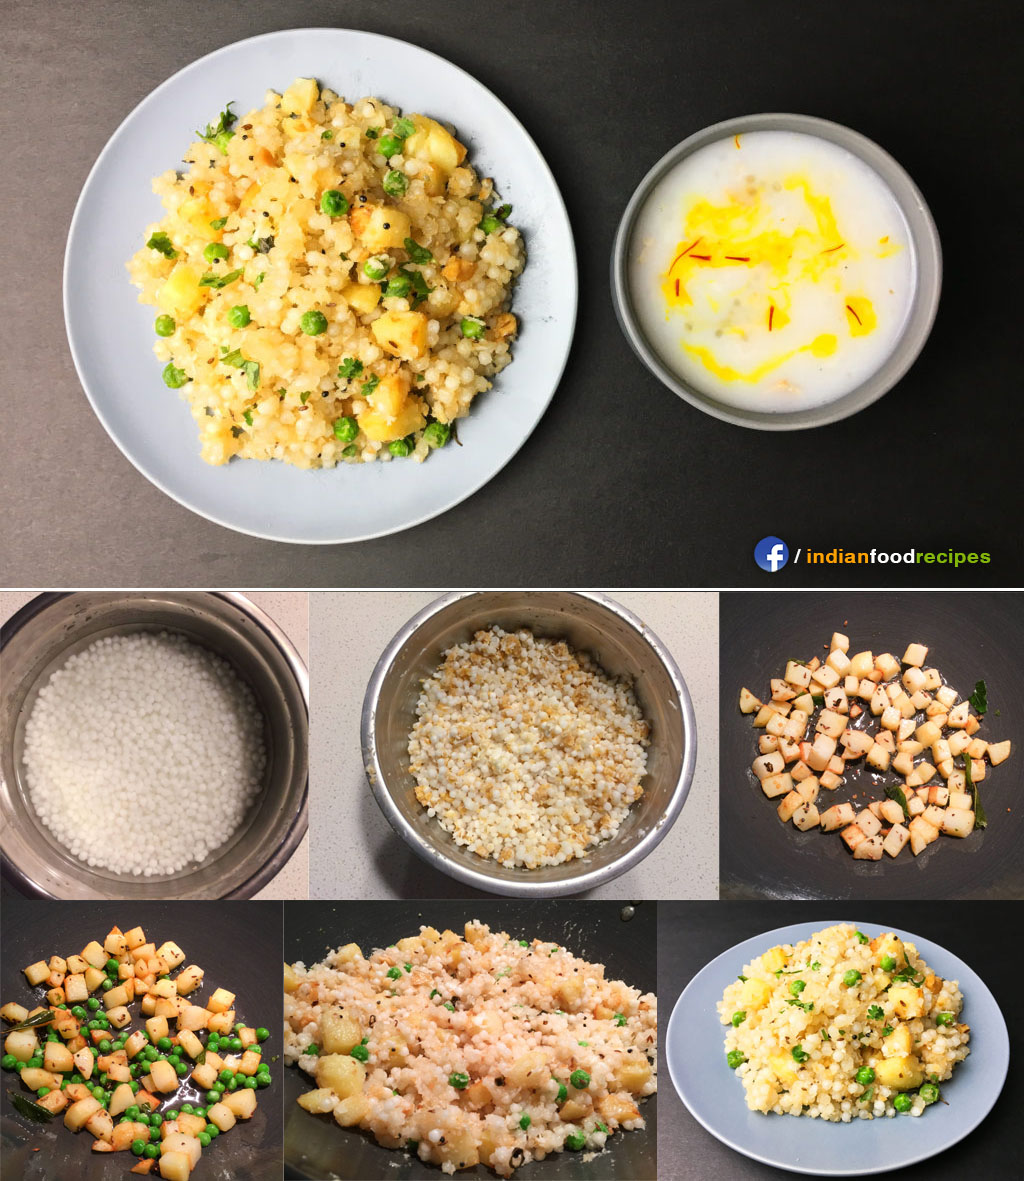 Sabudana Khichdi recipe step by step